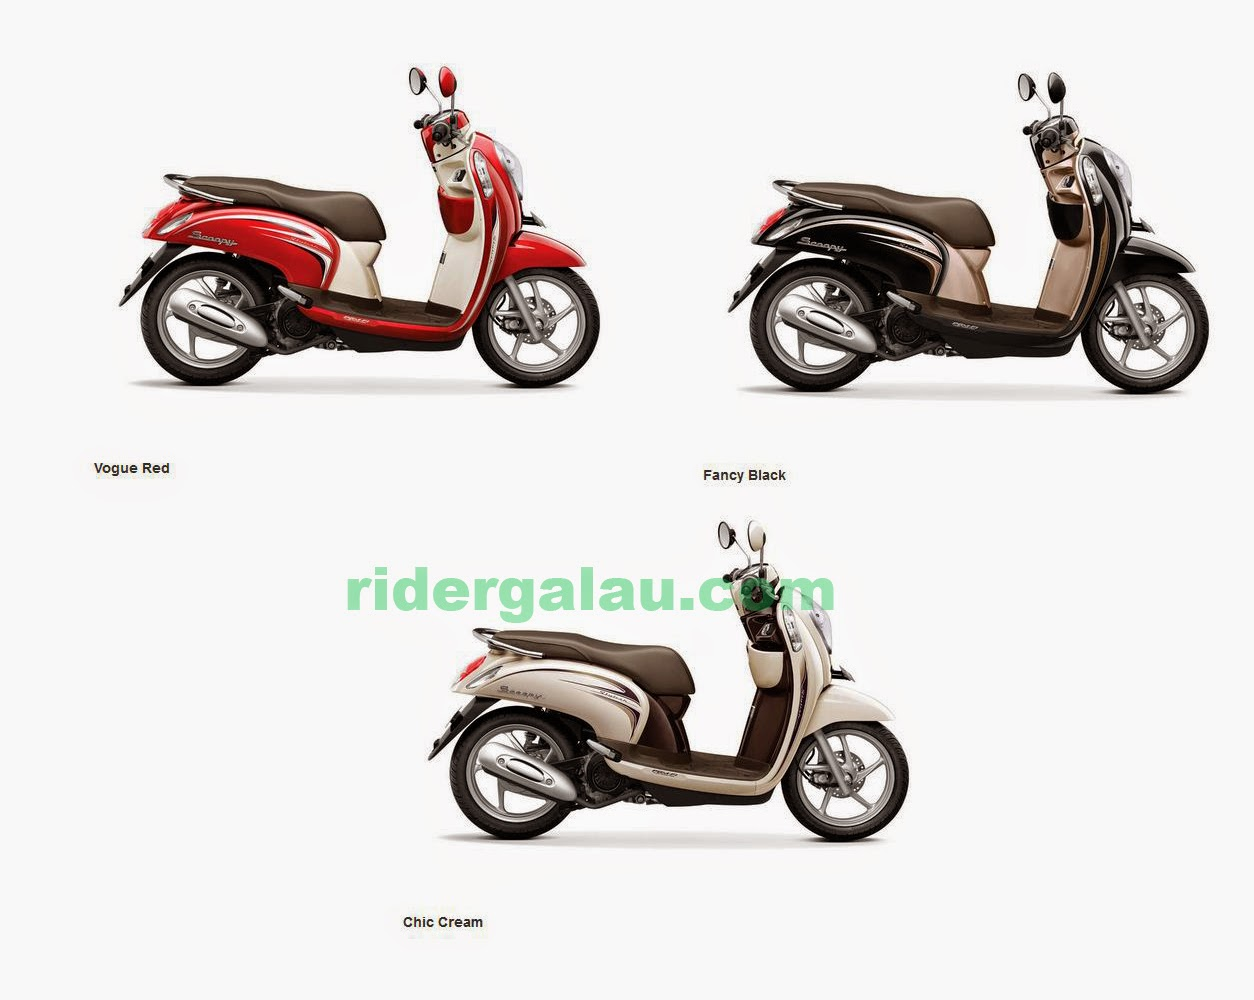 New stylish fi scoopy recommendations to wear in winter in 2019